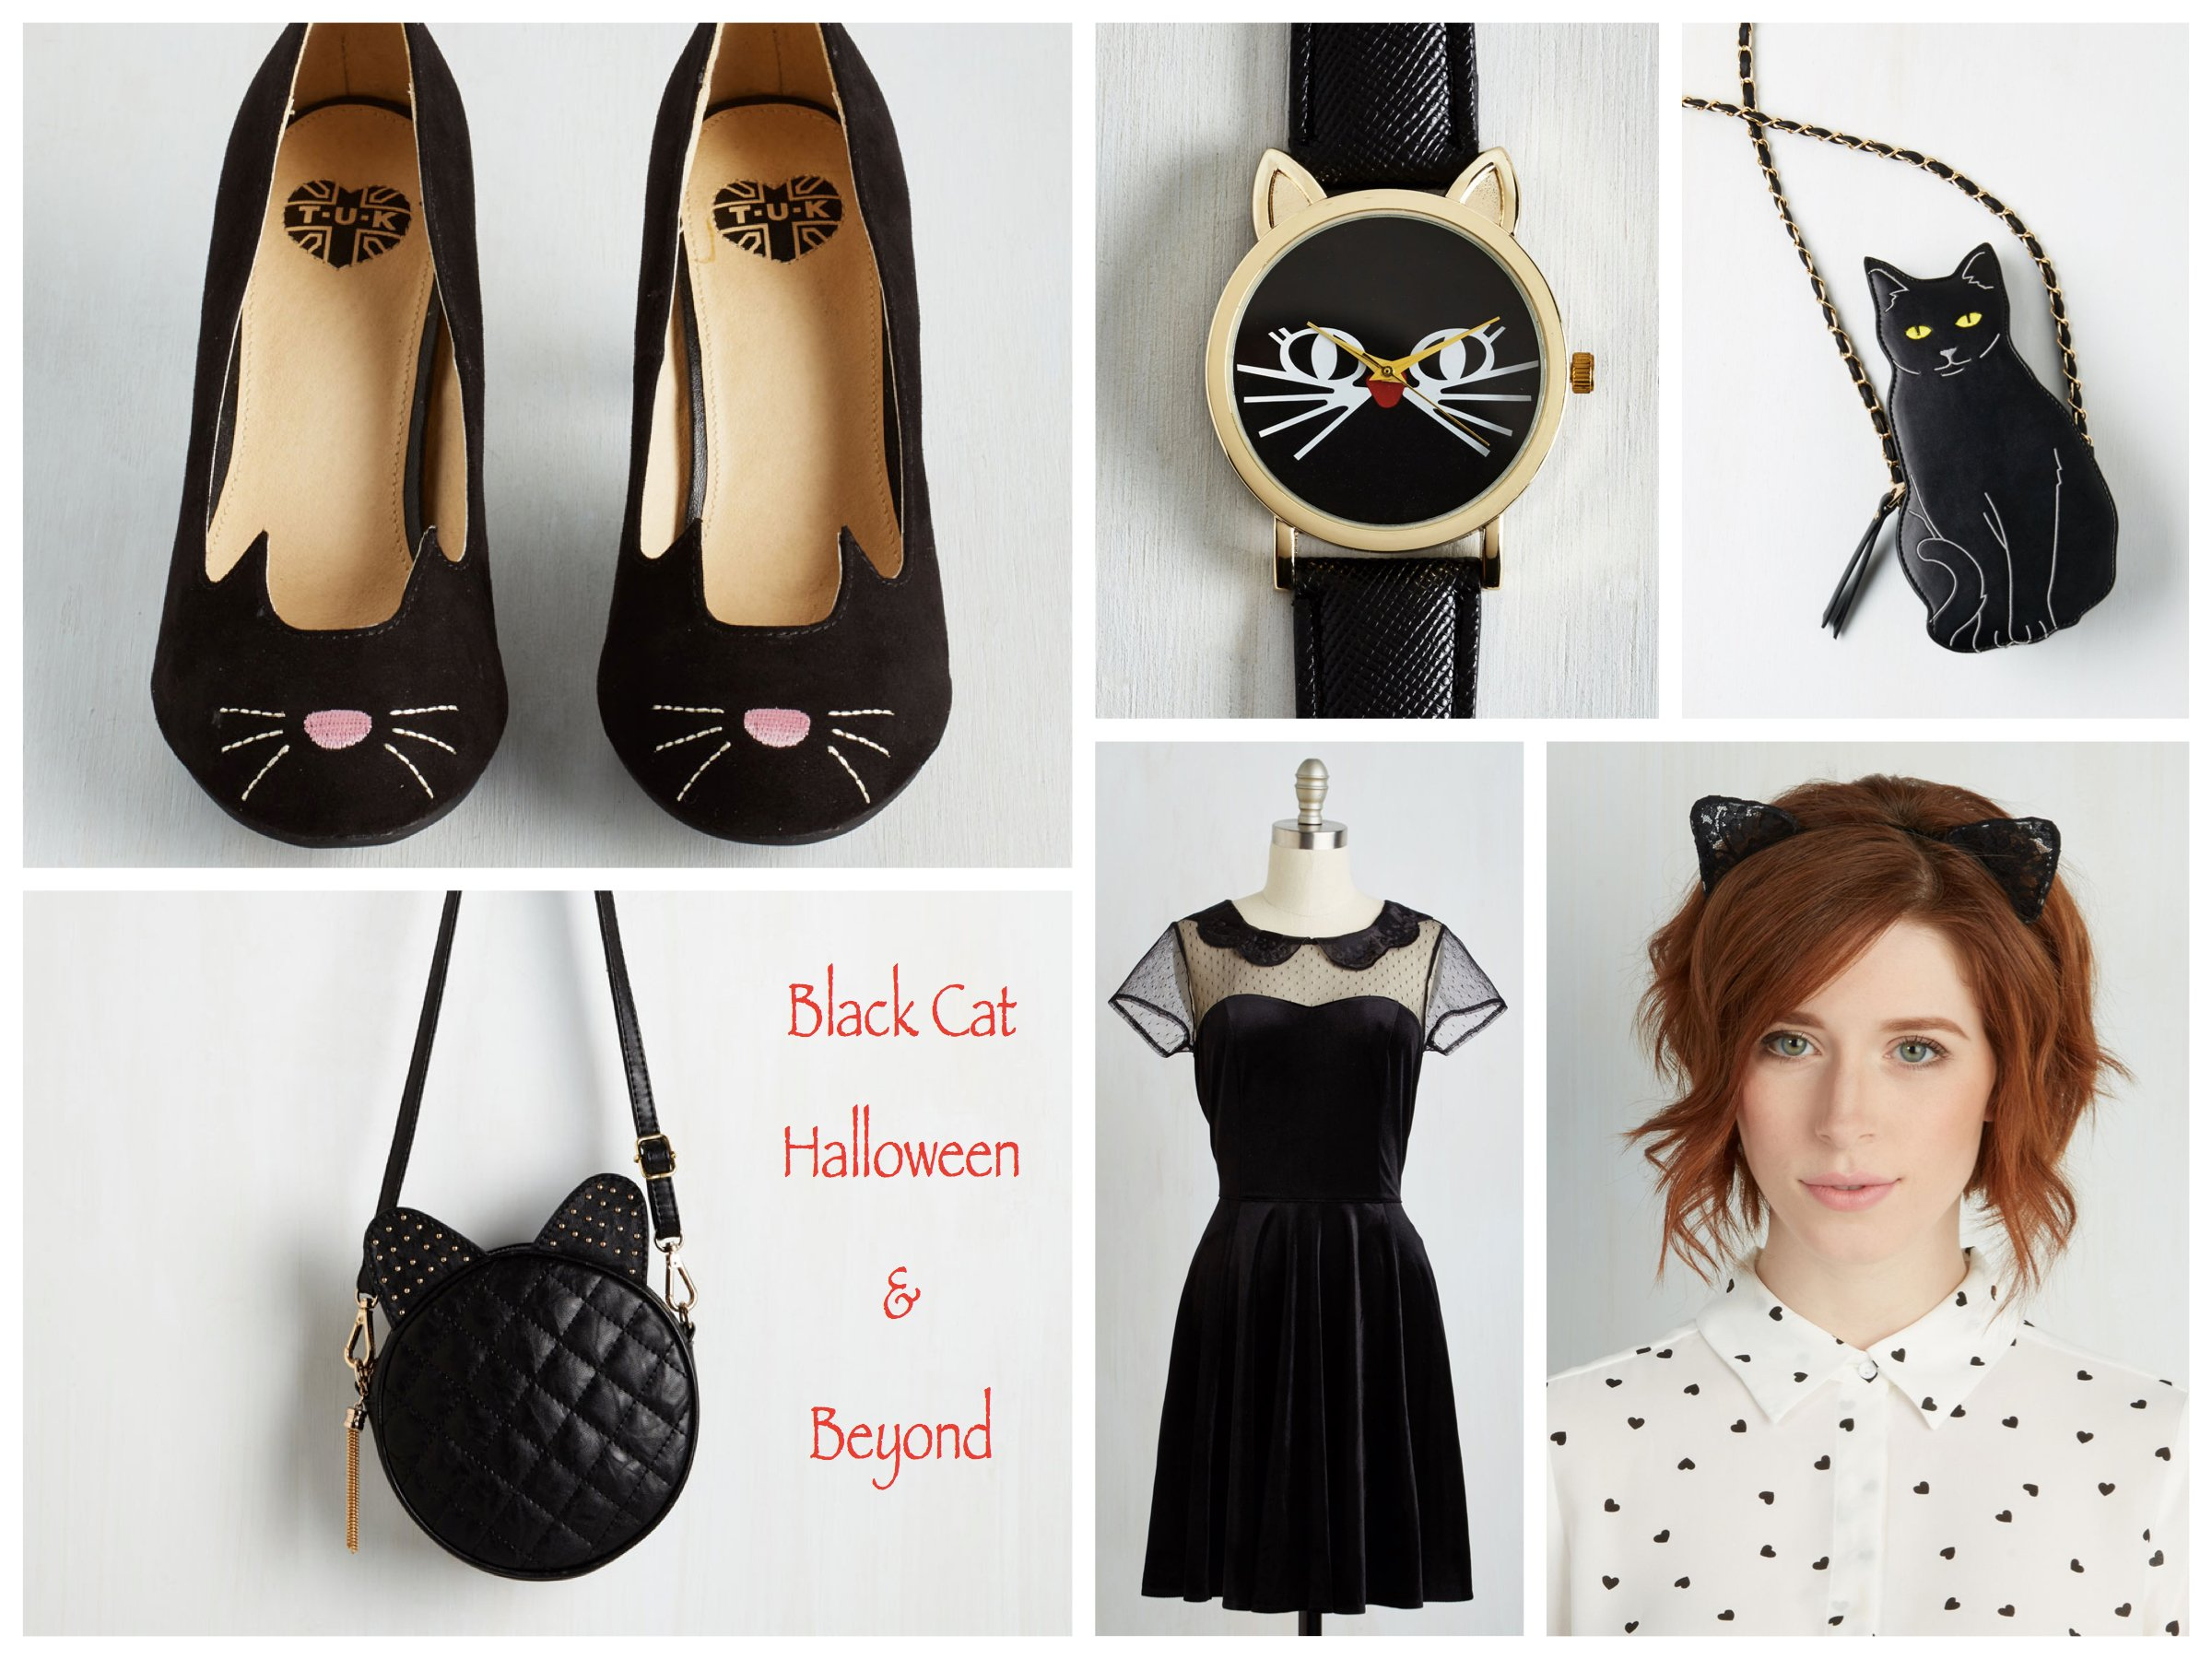 Little Black Dress + Black Cat Accessories for Halloween u0026 Beyond Halloween Costume Trend  sc 1 st  Party Idea Pros & 2015 Halloween Costume Trend u003eu003e Wear Outfits Not Costumes ...